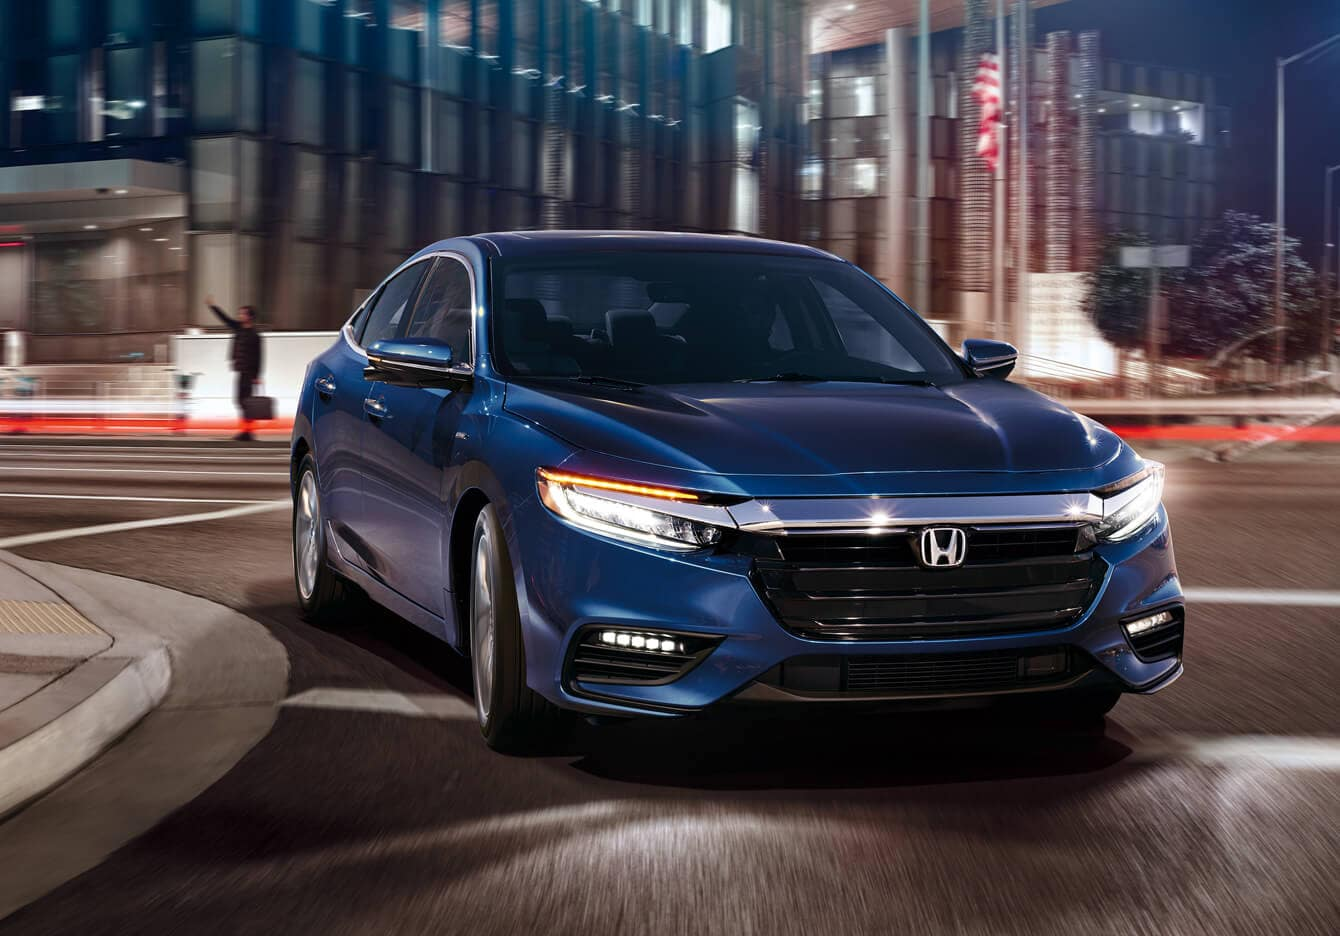 2019 Honda Insight Hybrid Exterior Front Angle City Night